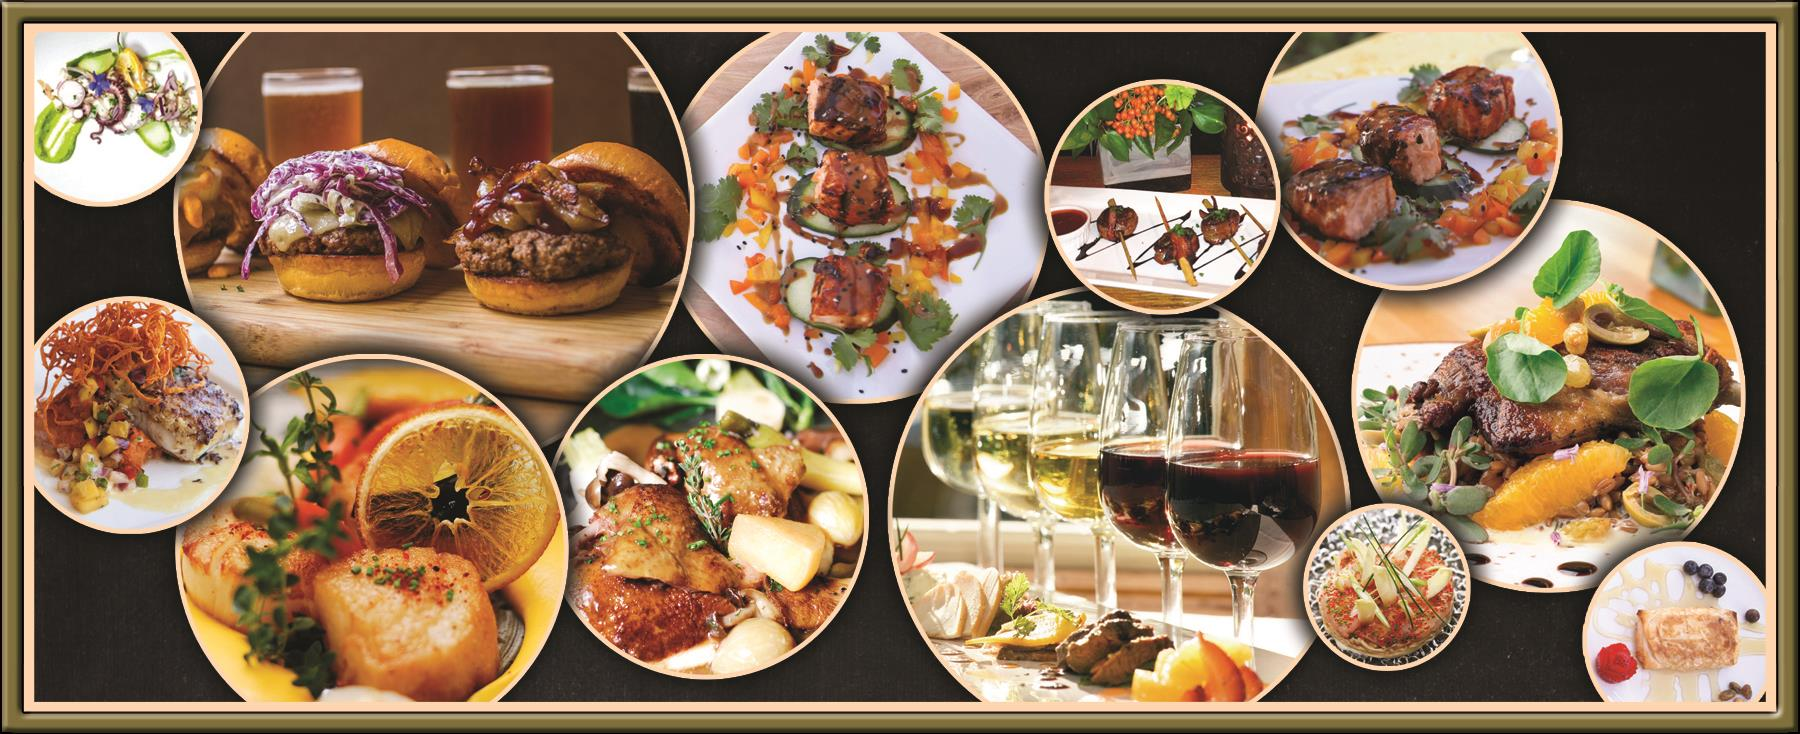 Dine Out Escondido! Restaurant Week